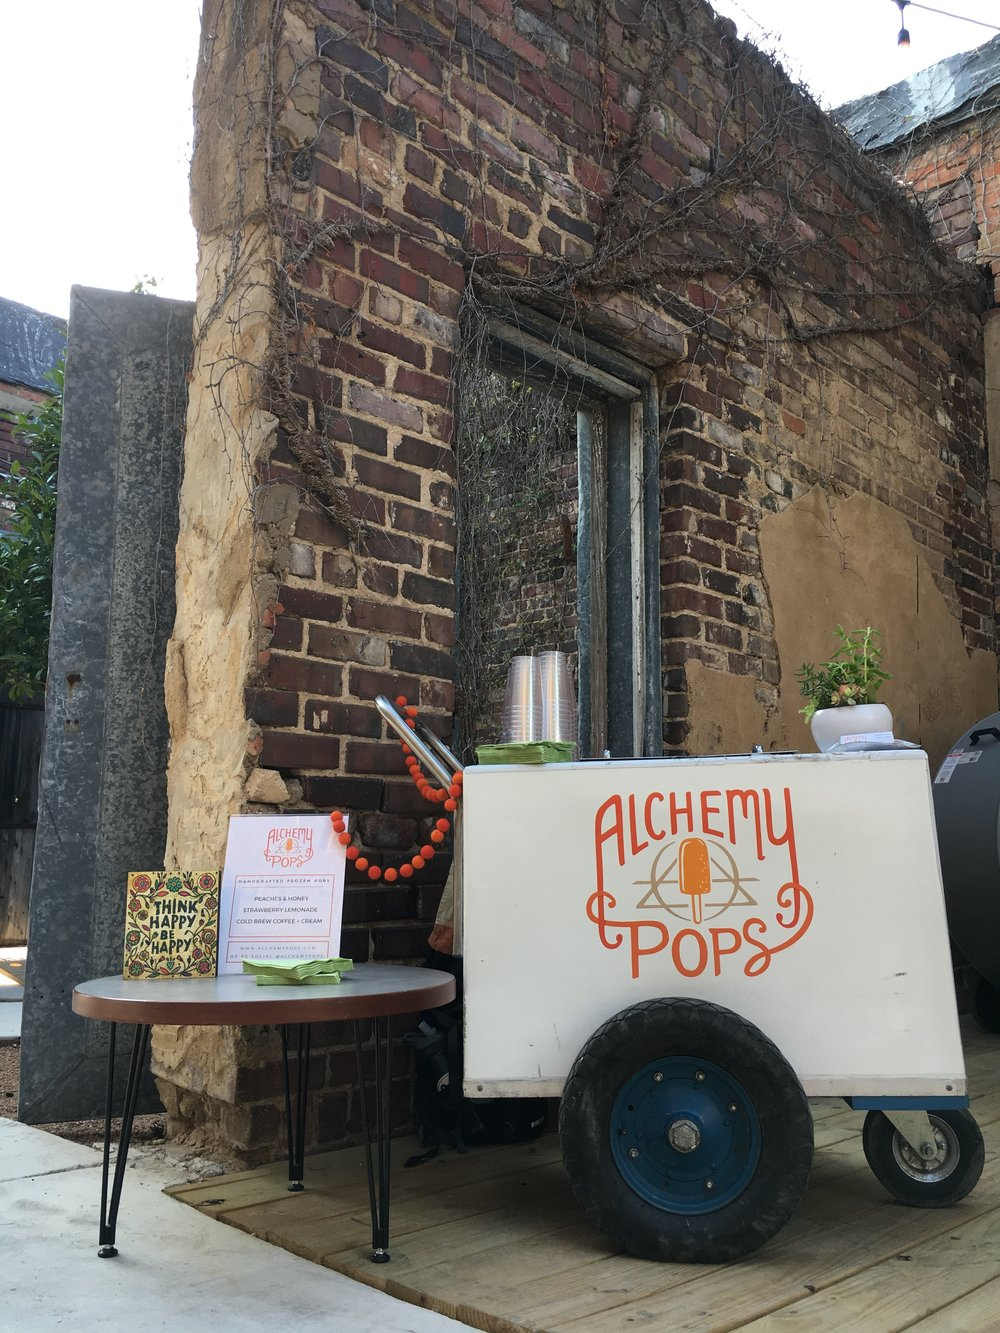 The first Alchemy Pops pop cart set up at a wedding at The 4 Eleven, where the first Alchemy Pops Shop is located!